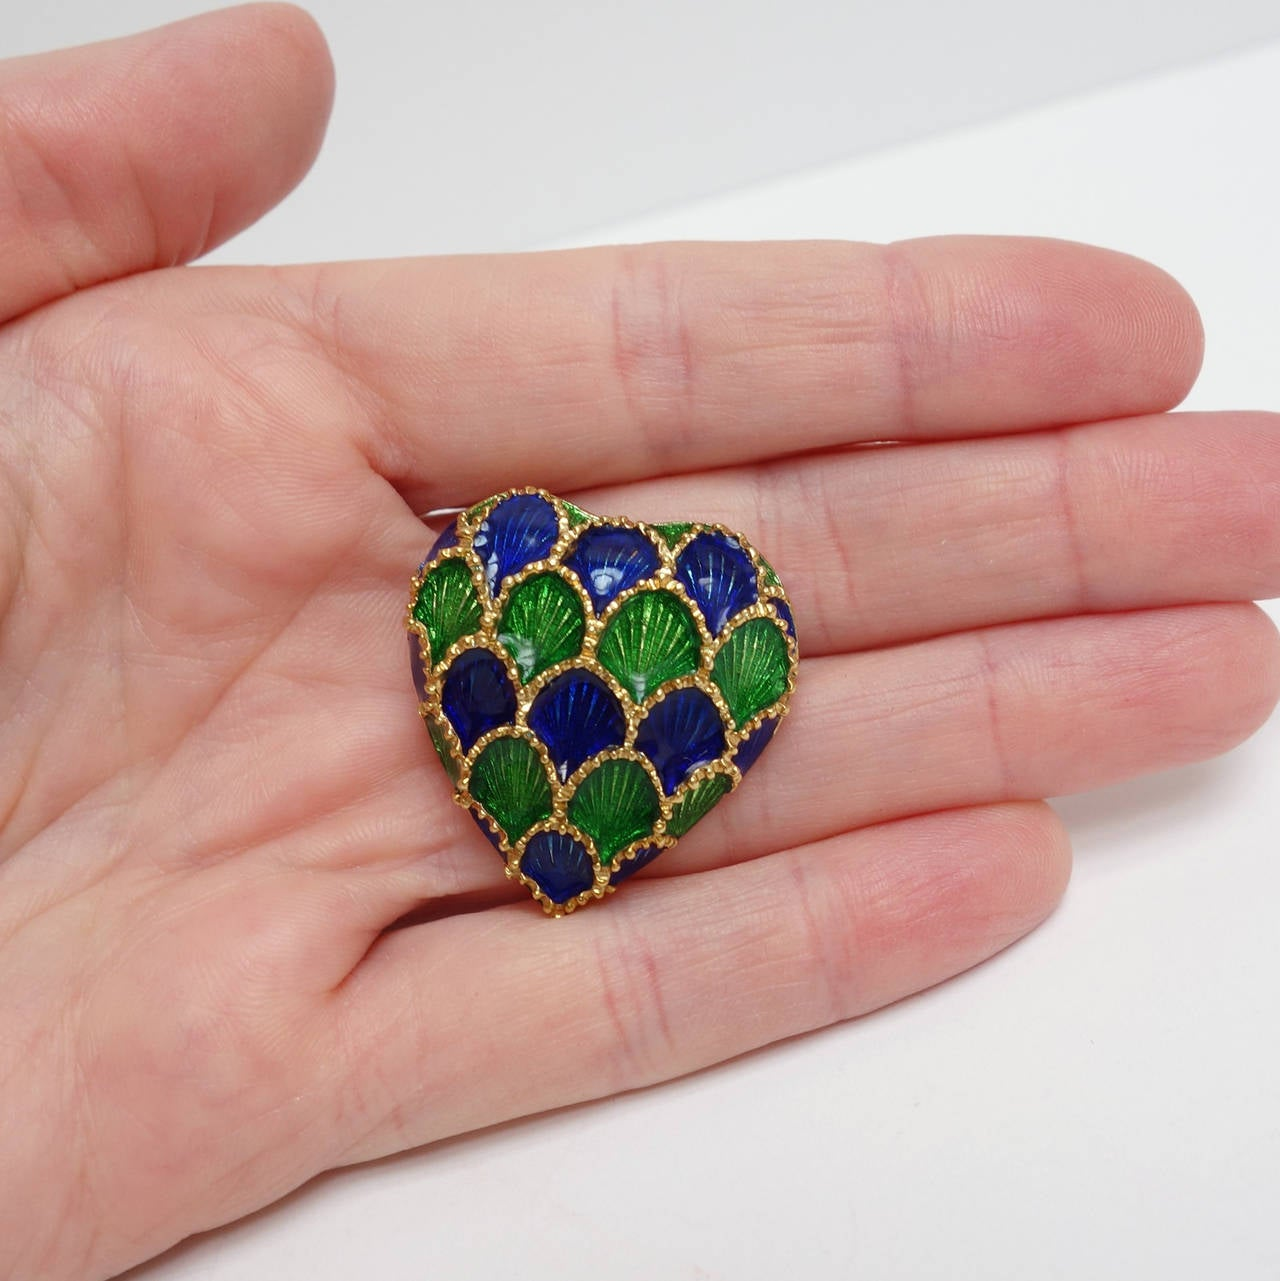 Women's Tiffany & Co. Blue and Green Enamel Gold Heart Pin Pendant For Sale